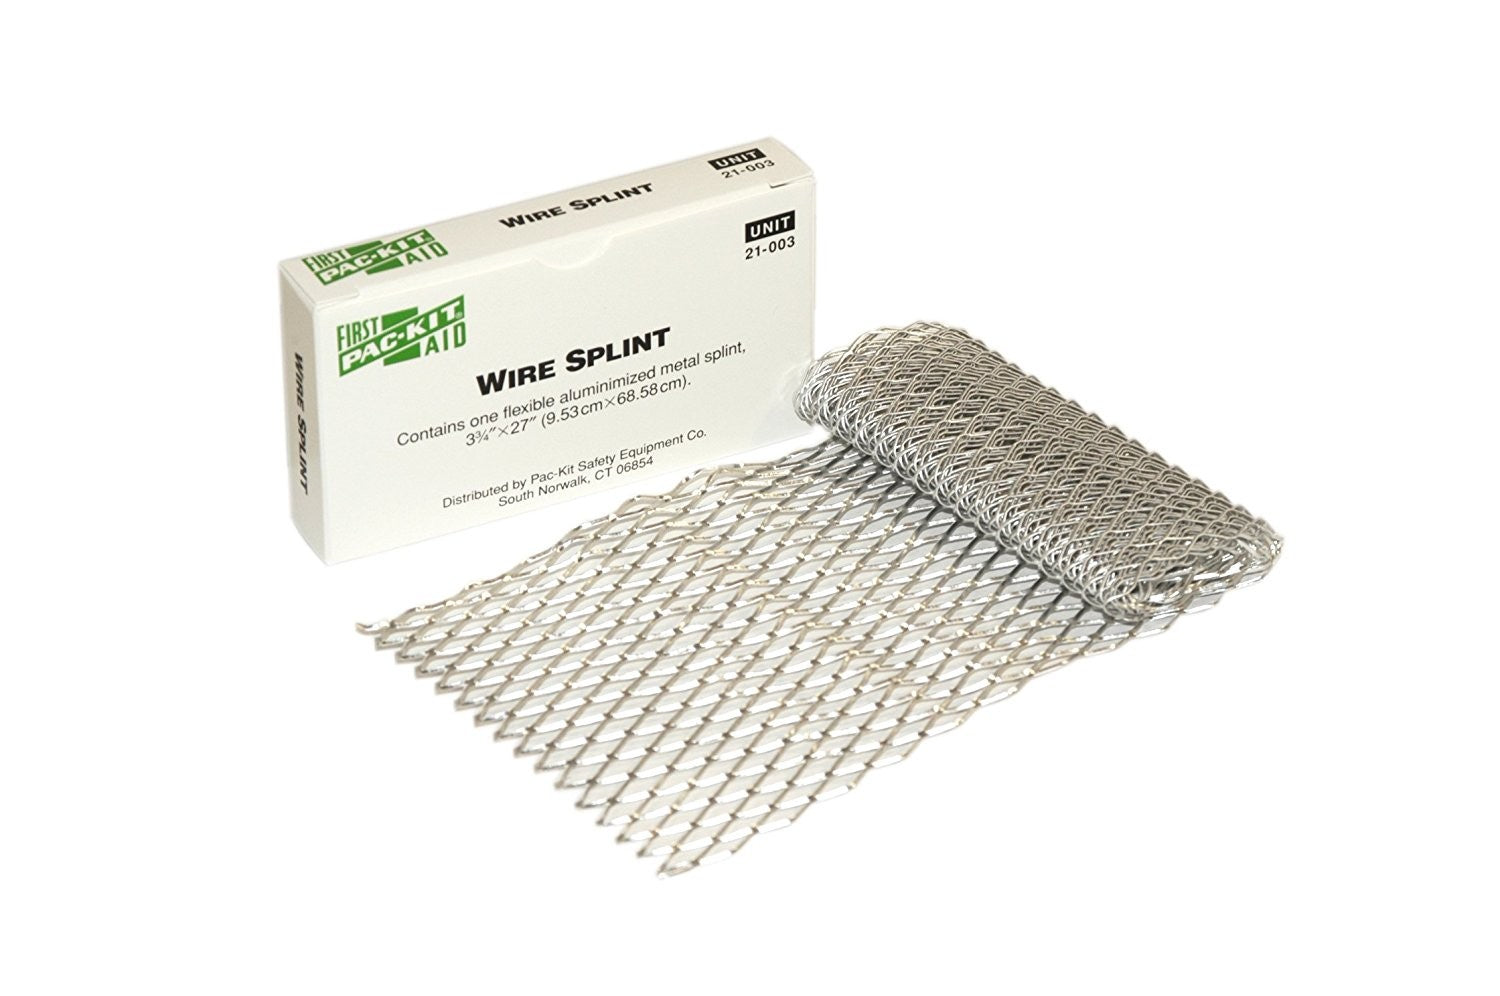 "First Aid Only Aluminized Flexible Metal Wire Splint, 27"" Length X 3-3/4"" Width, 1 Per Box"